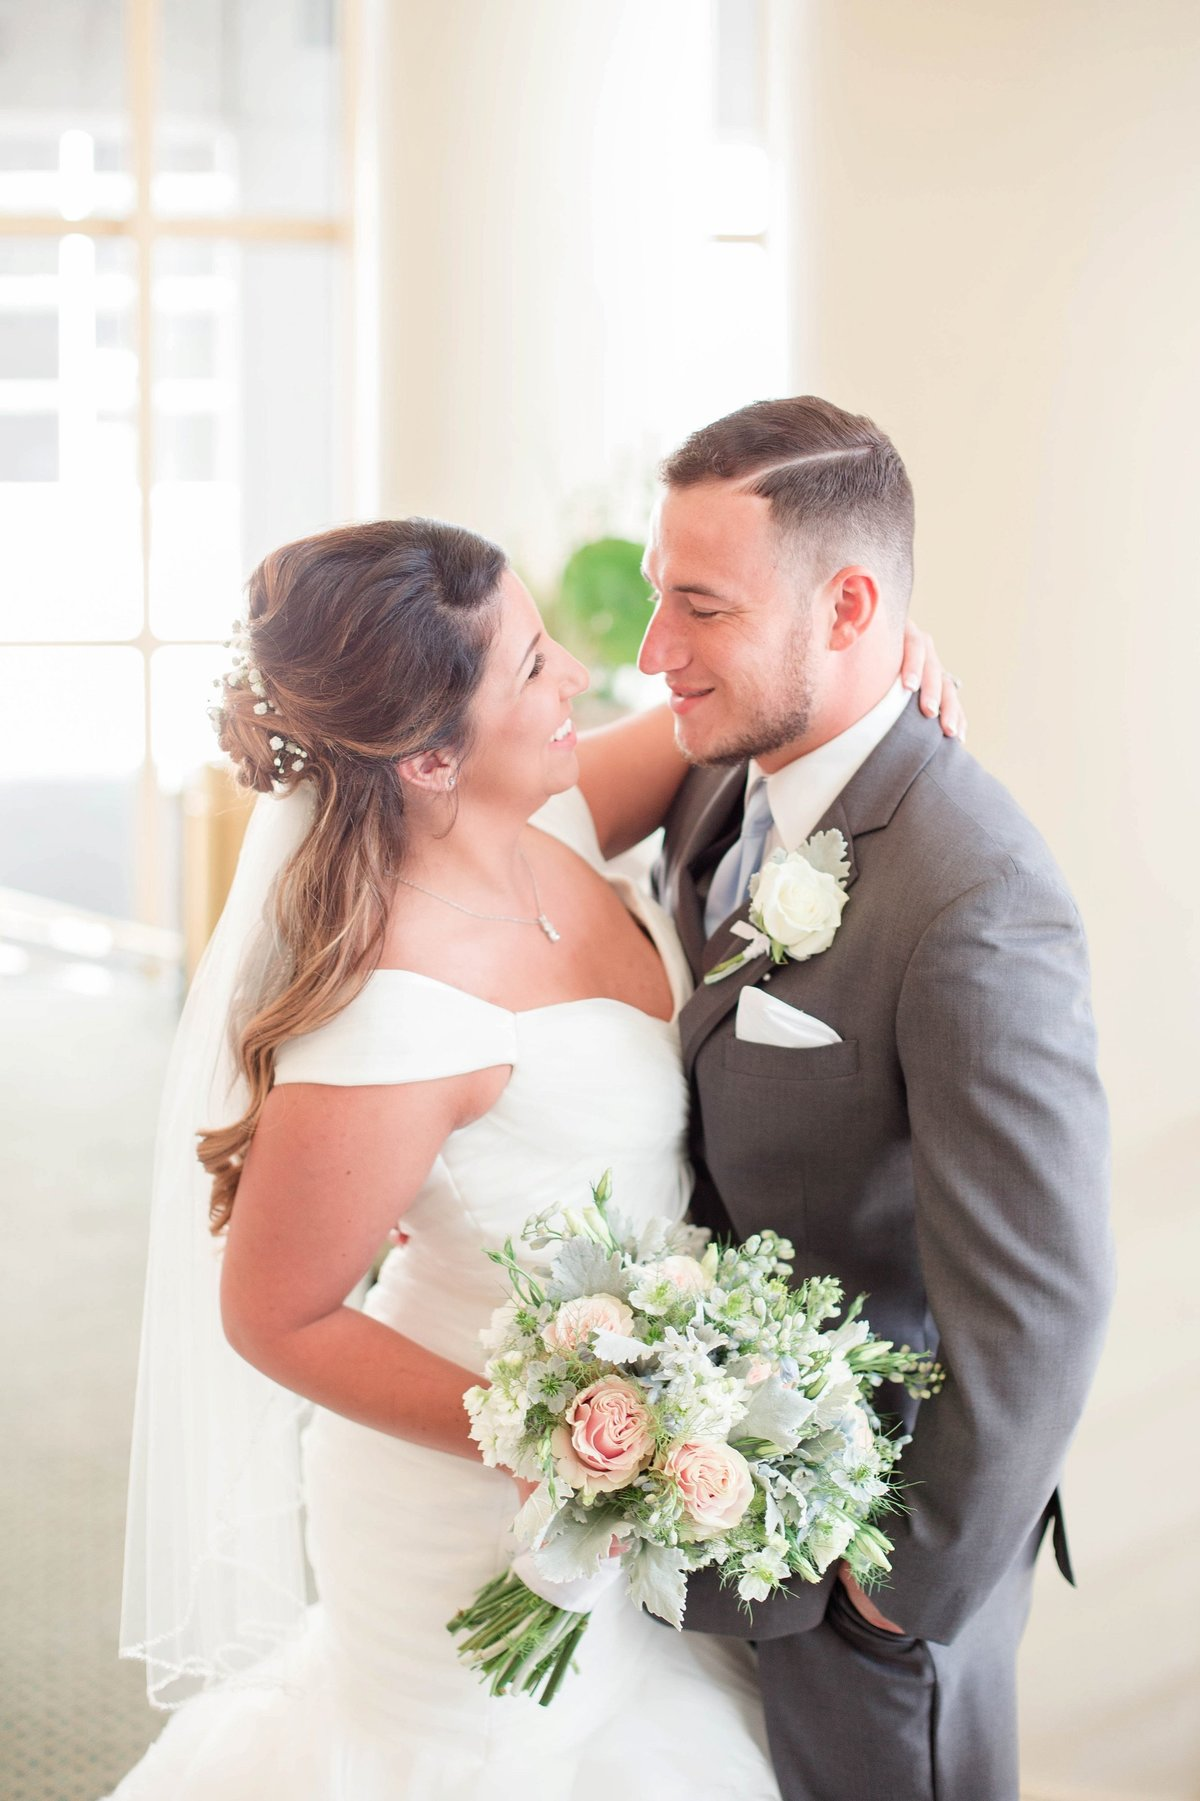 Baby Powder Blue and Blush Summer Park Inn Wedding with First Look by Toledo and Detroit Based Wedding Photographers Kent & Stephanie Photography_0985